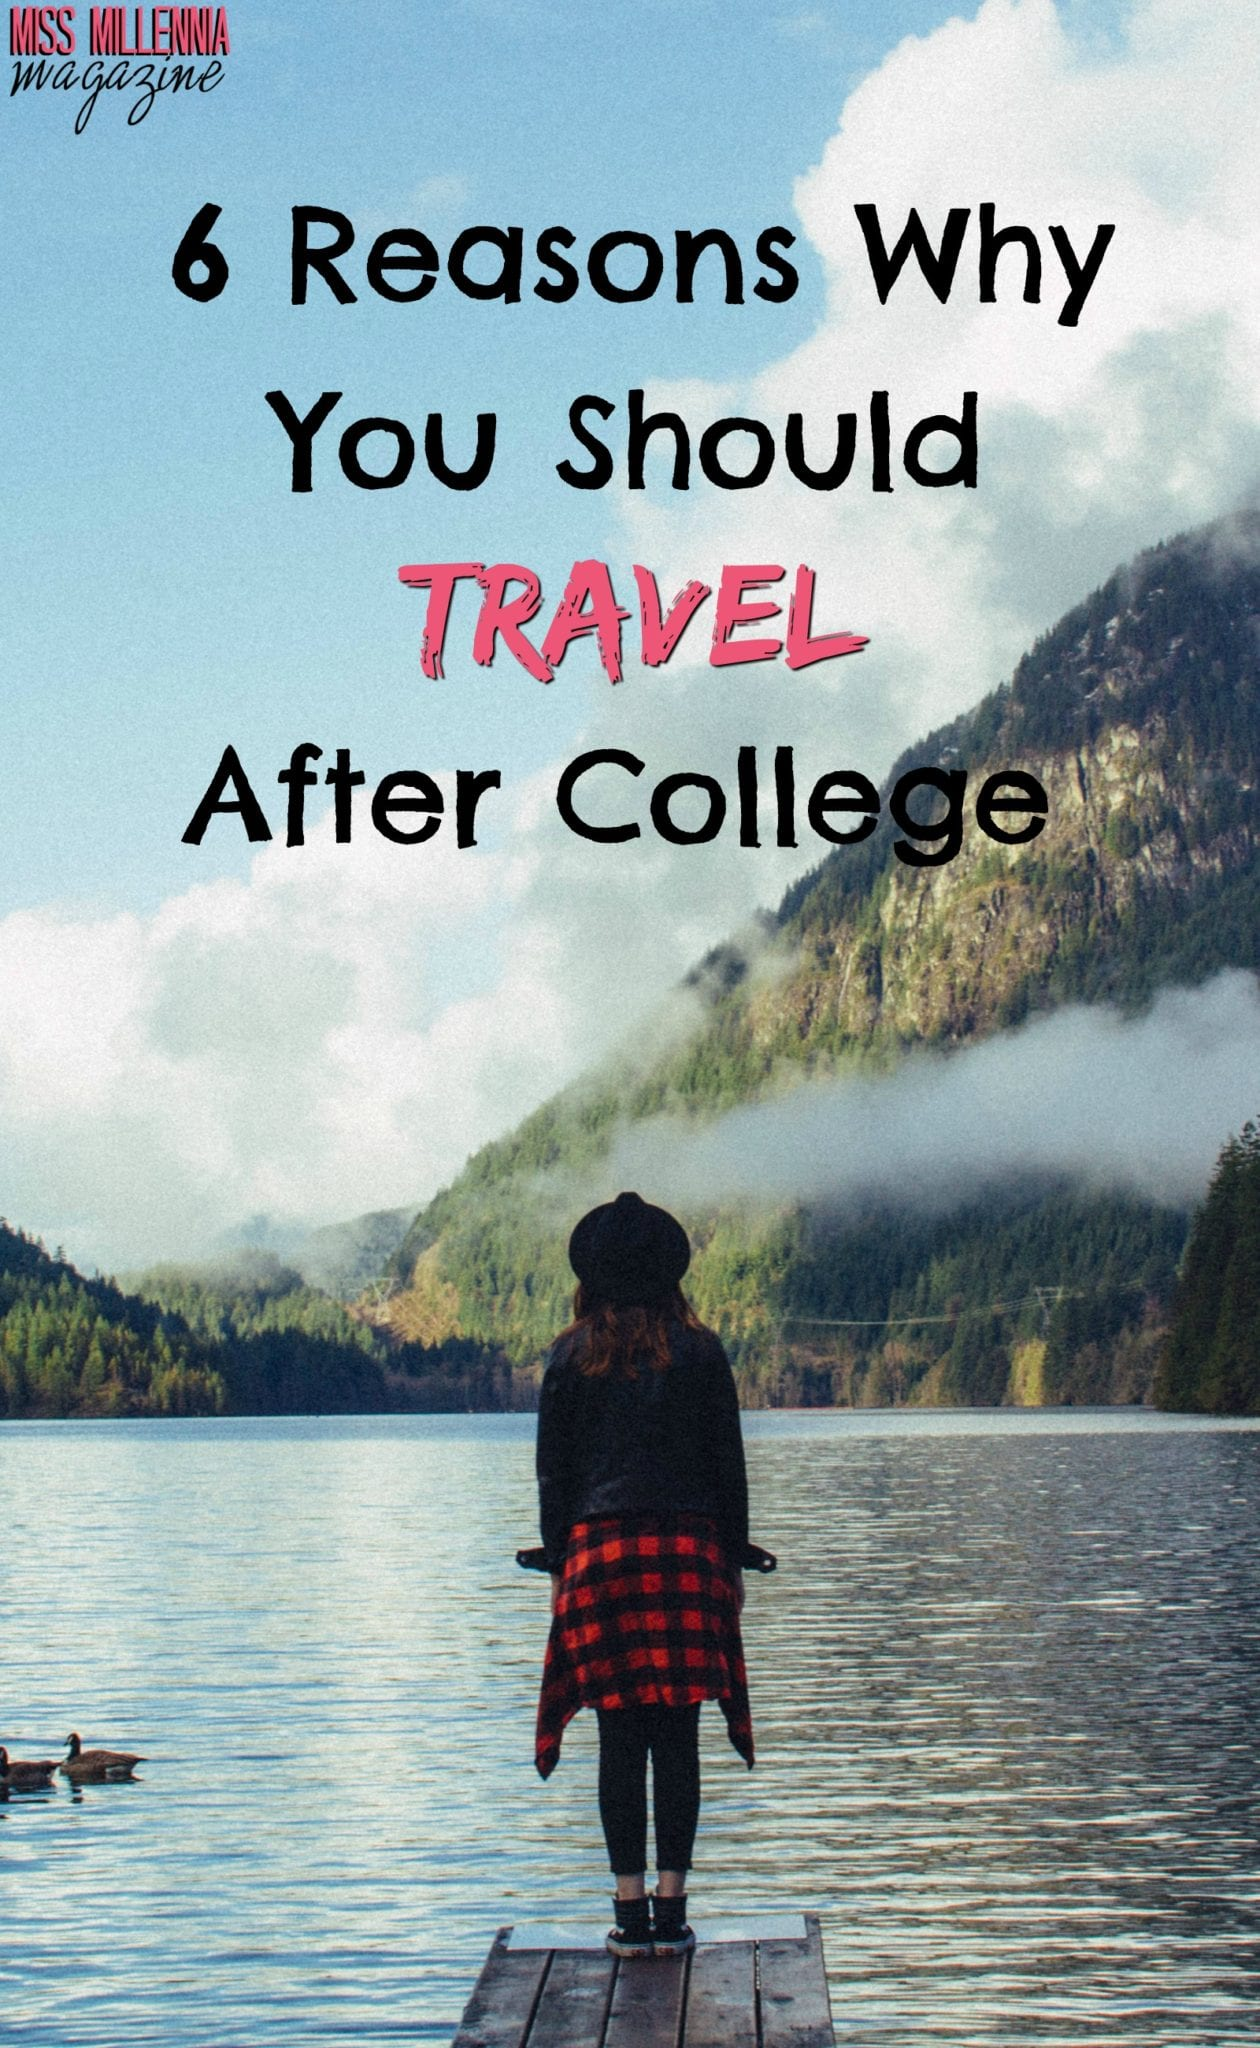 6 Reasons Why You Should Travel After College